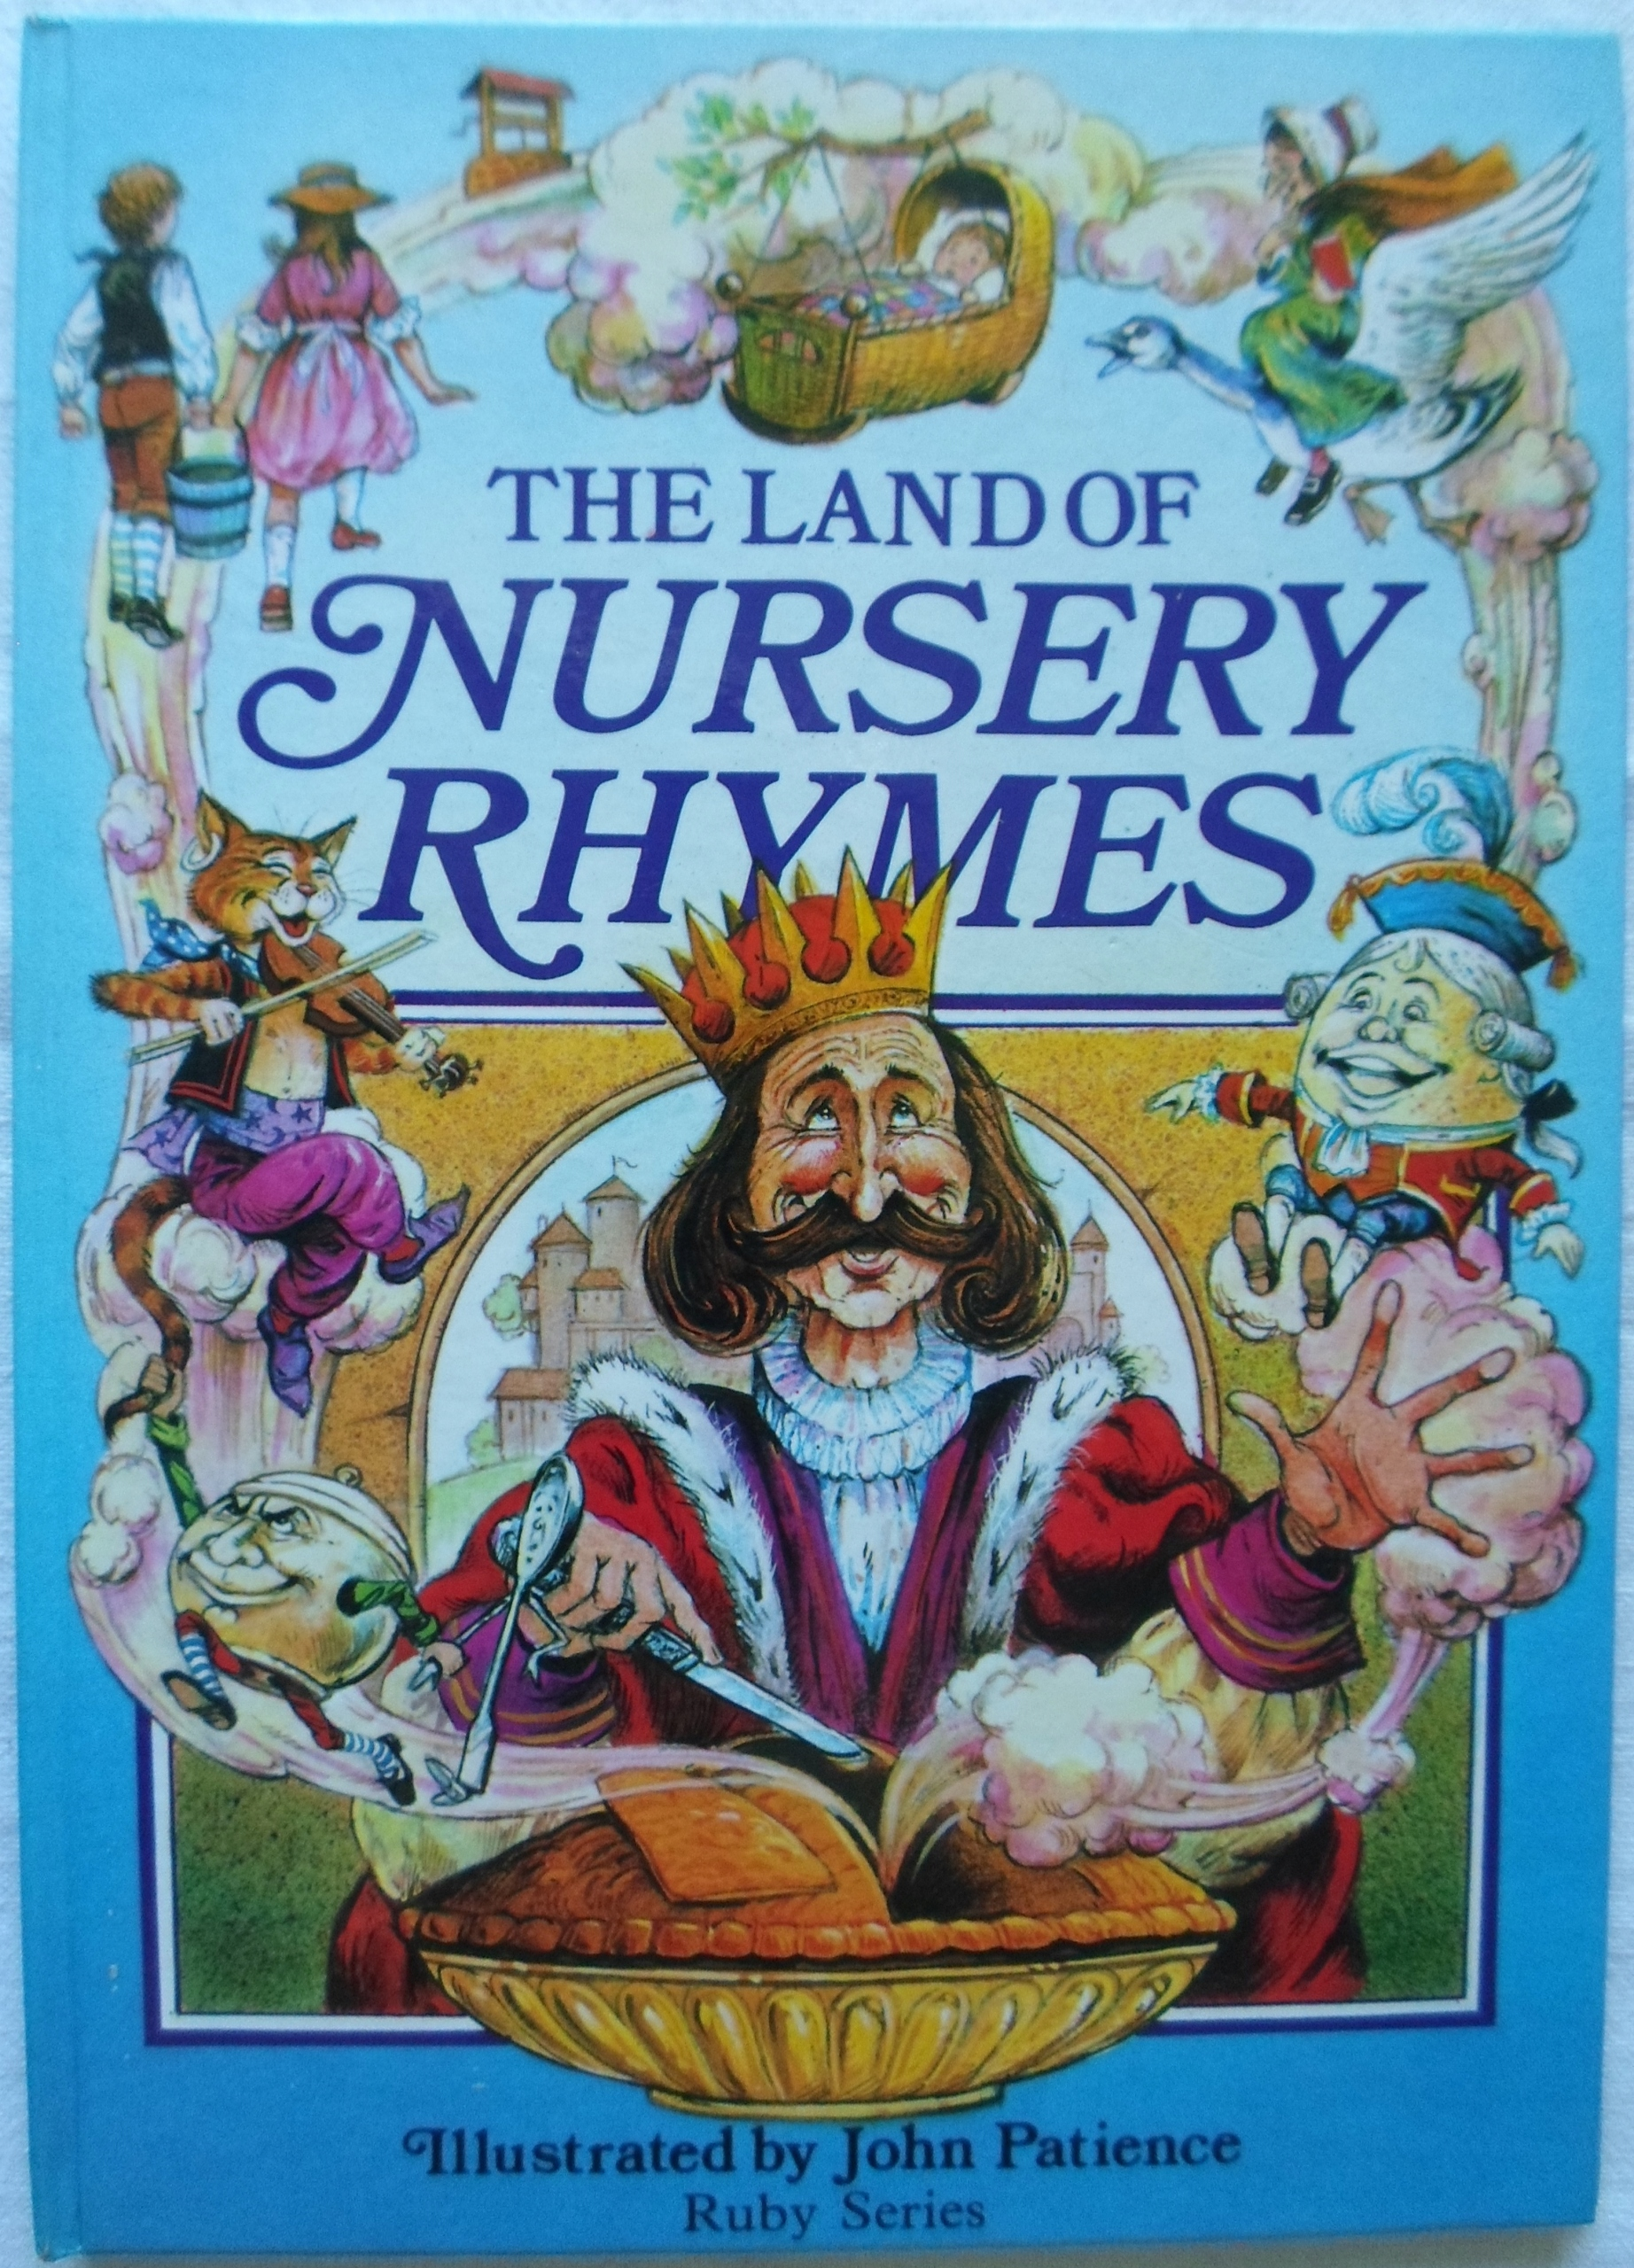 The Land of Nursery Rhymes